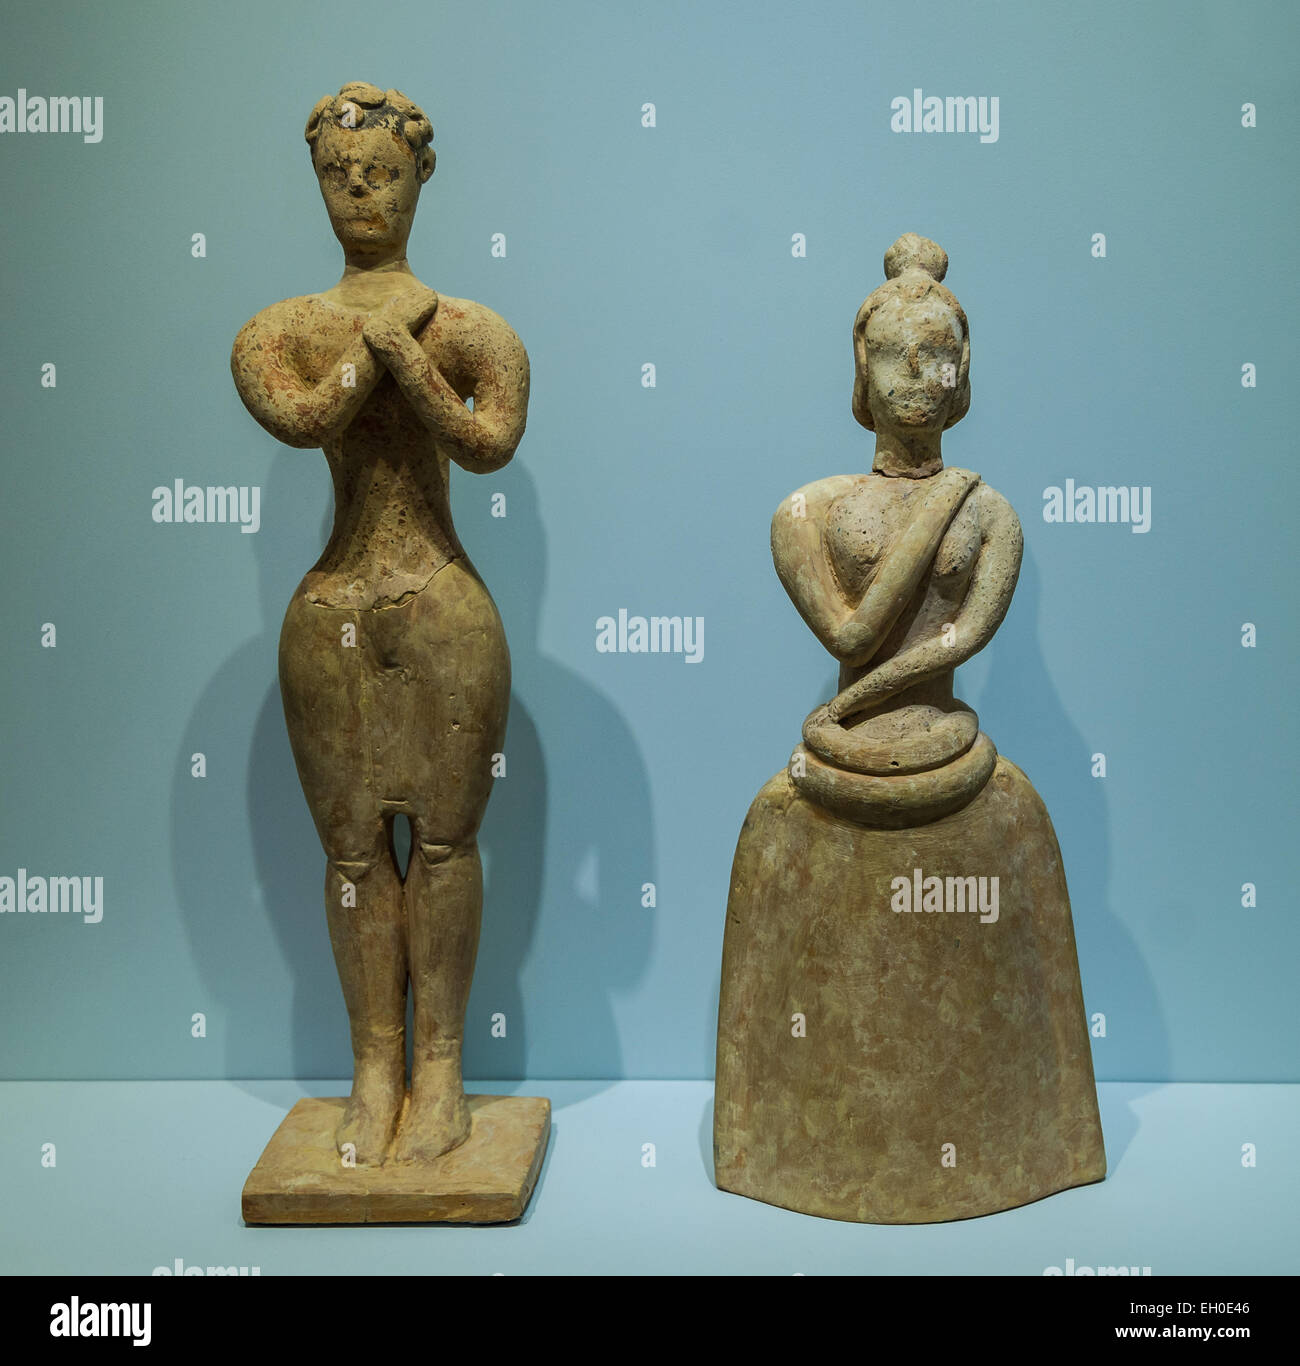 Pair of clay figurines of worshippers exhibiting typical features of the 'Figurine art of sanctuaries'. - Stock Image